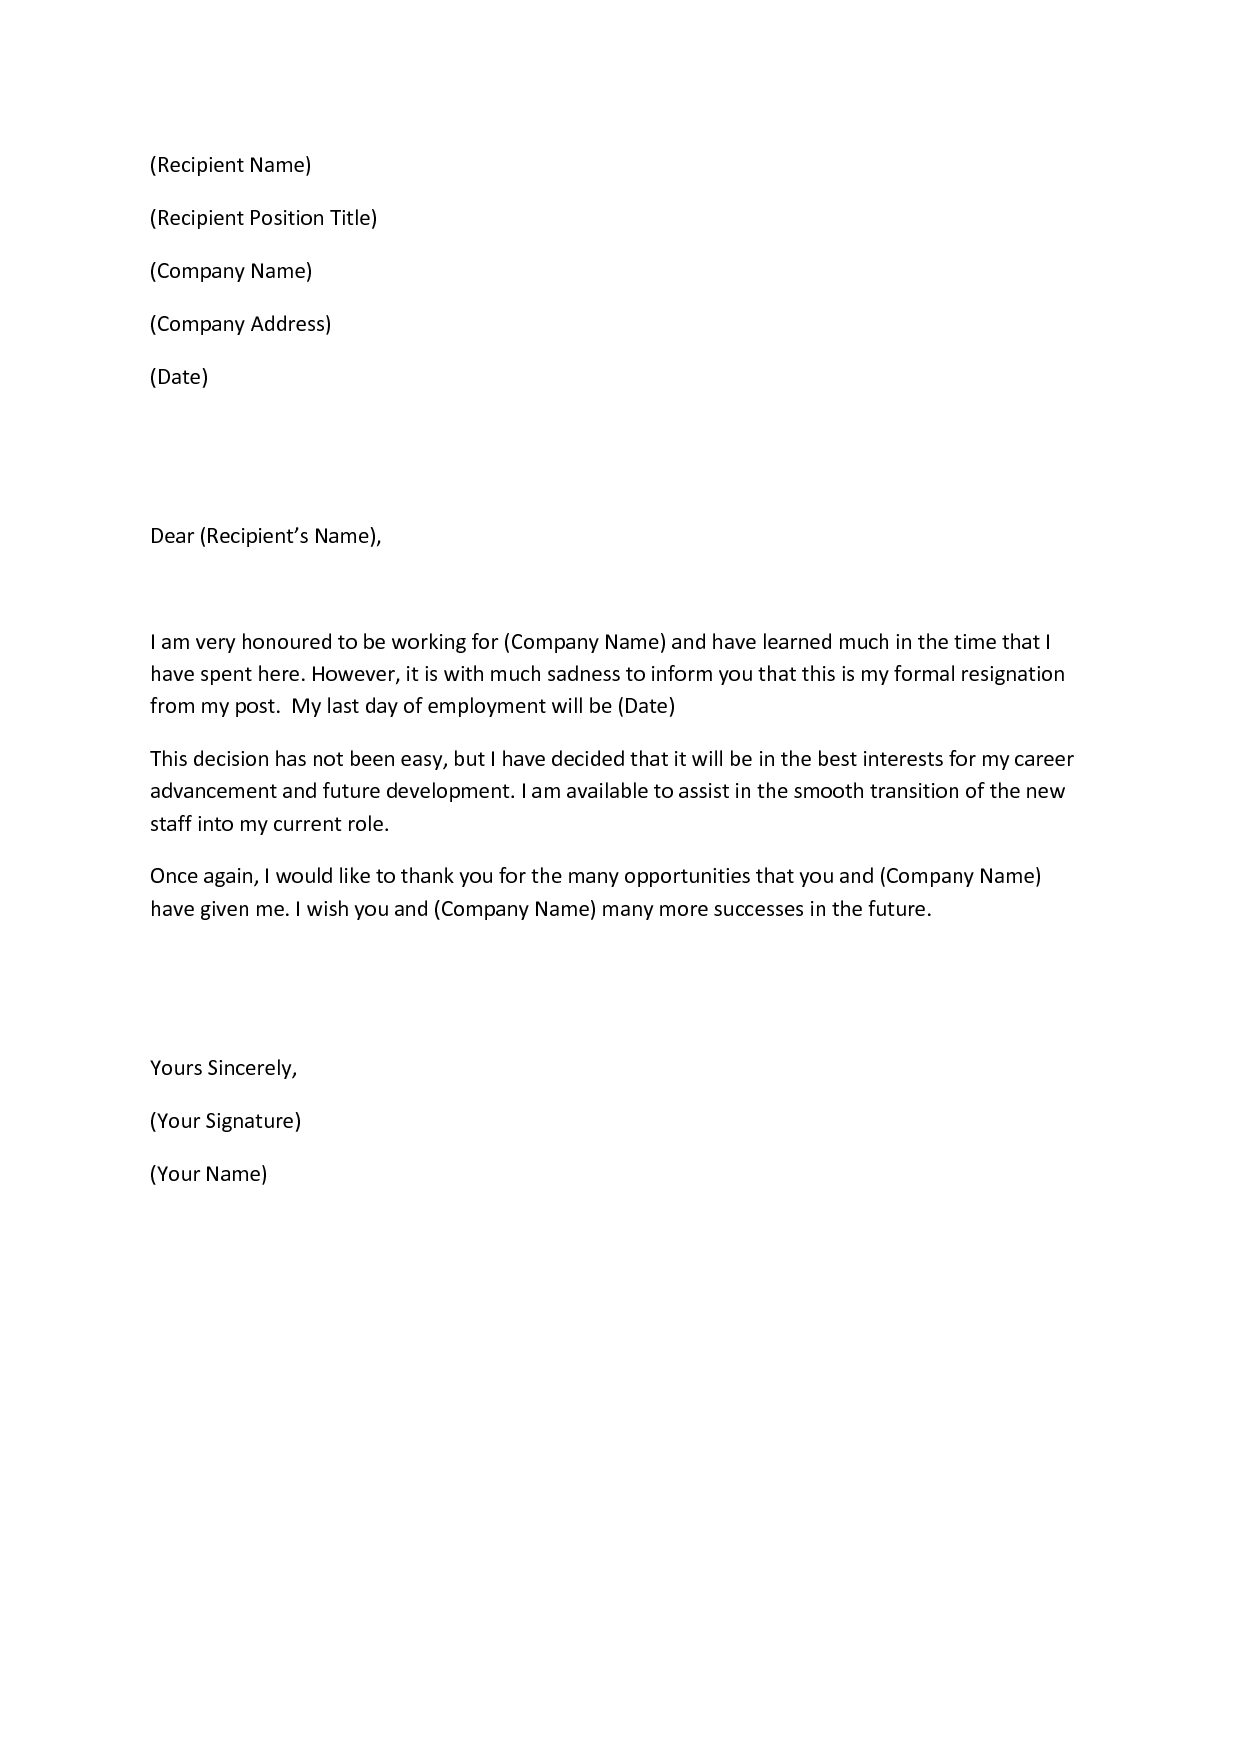 Delightful Sample Letter Resignation Get Doc Rkvb Template Kevinkan Resignation Letter  Template Sample Employee Sample Careers Here Resignation Letter Quitting  Job ... Intended Template For Resignation Letter